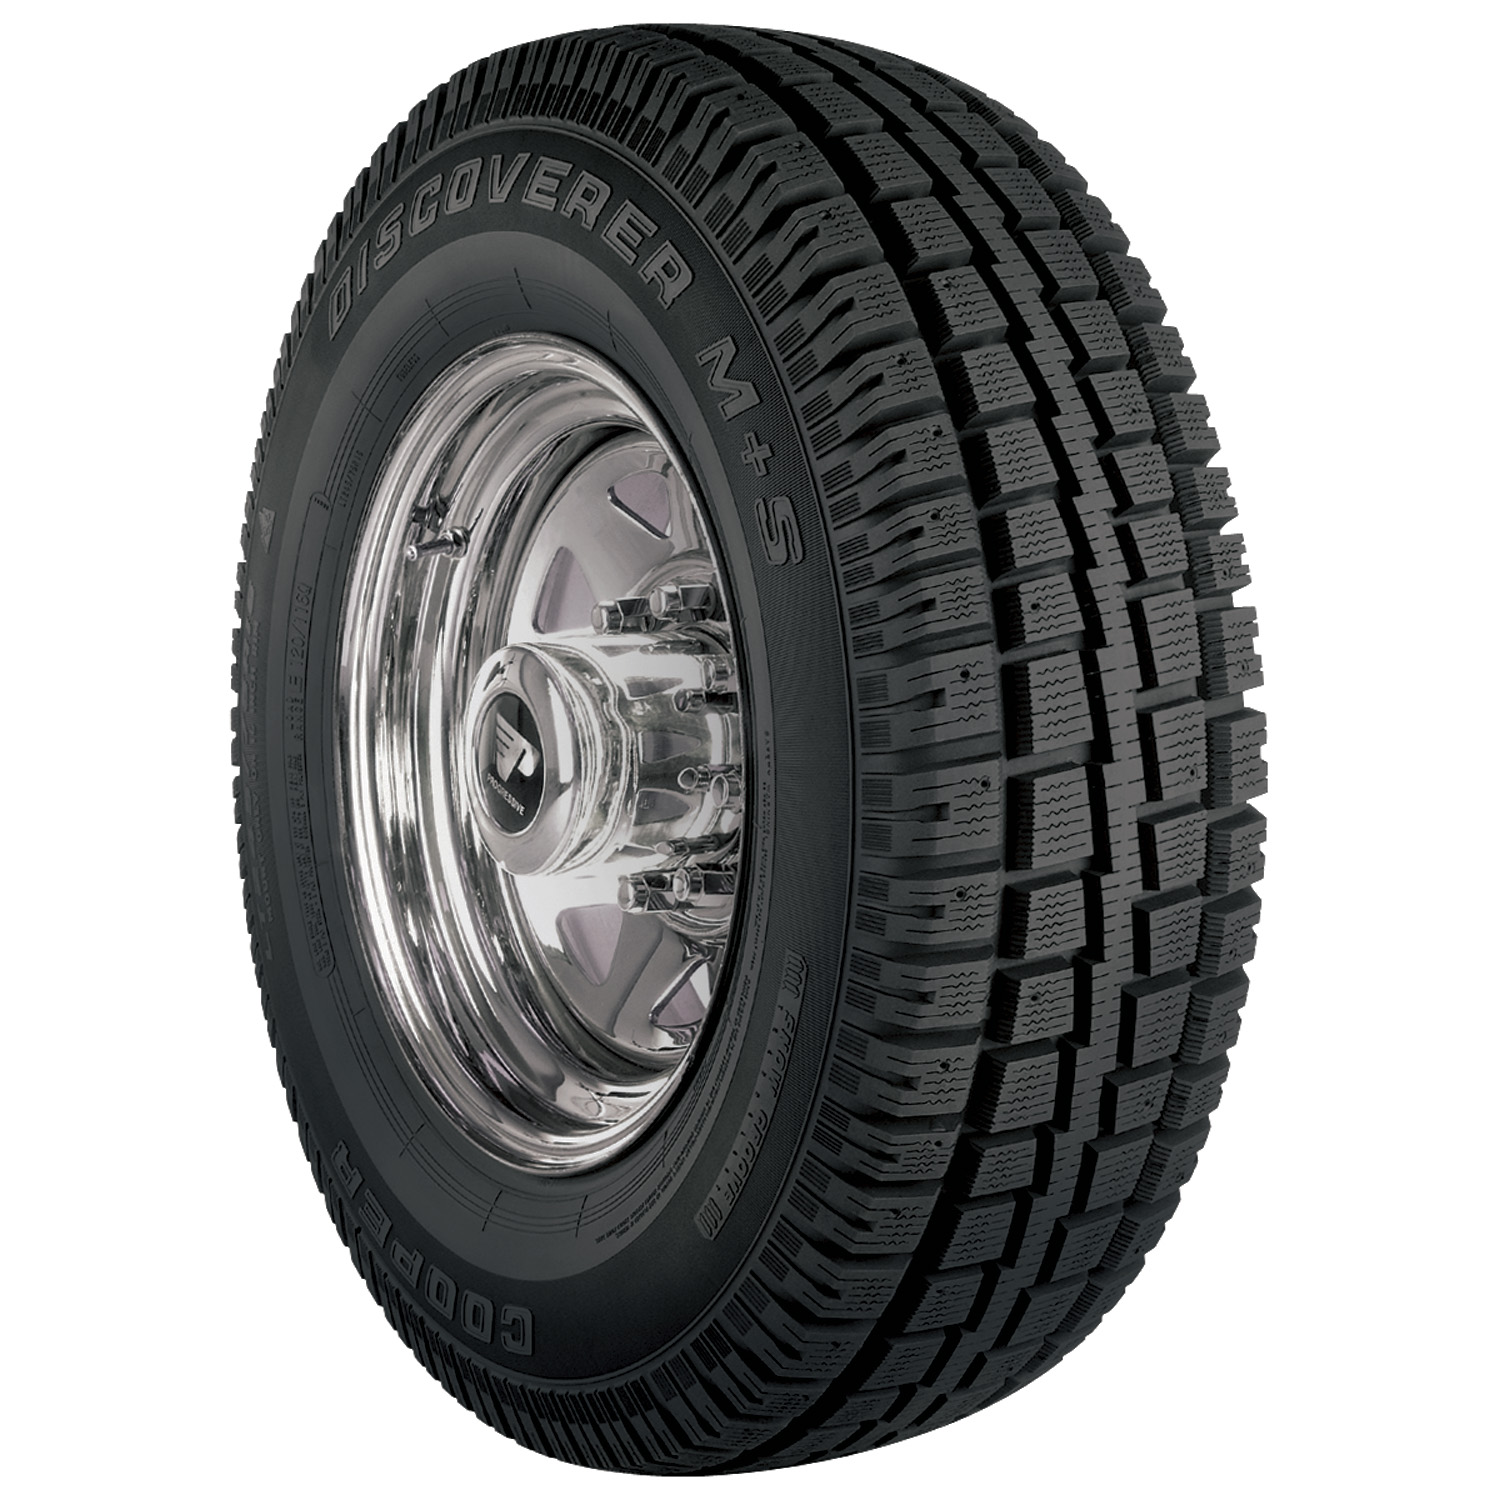 Cooper  Discoverer M+S - 255/70R18 113S BW - Winter Tire